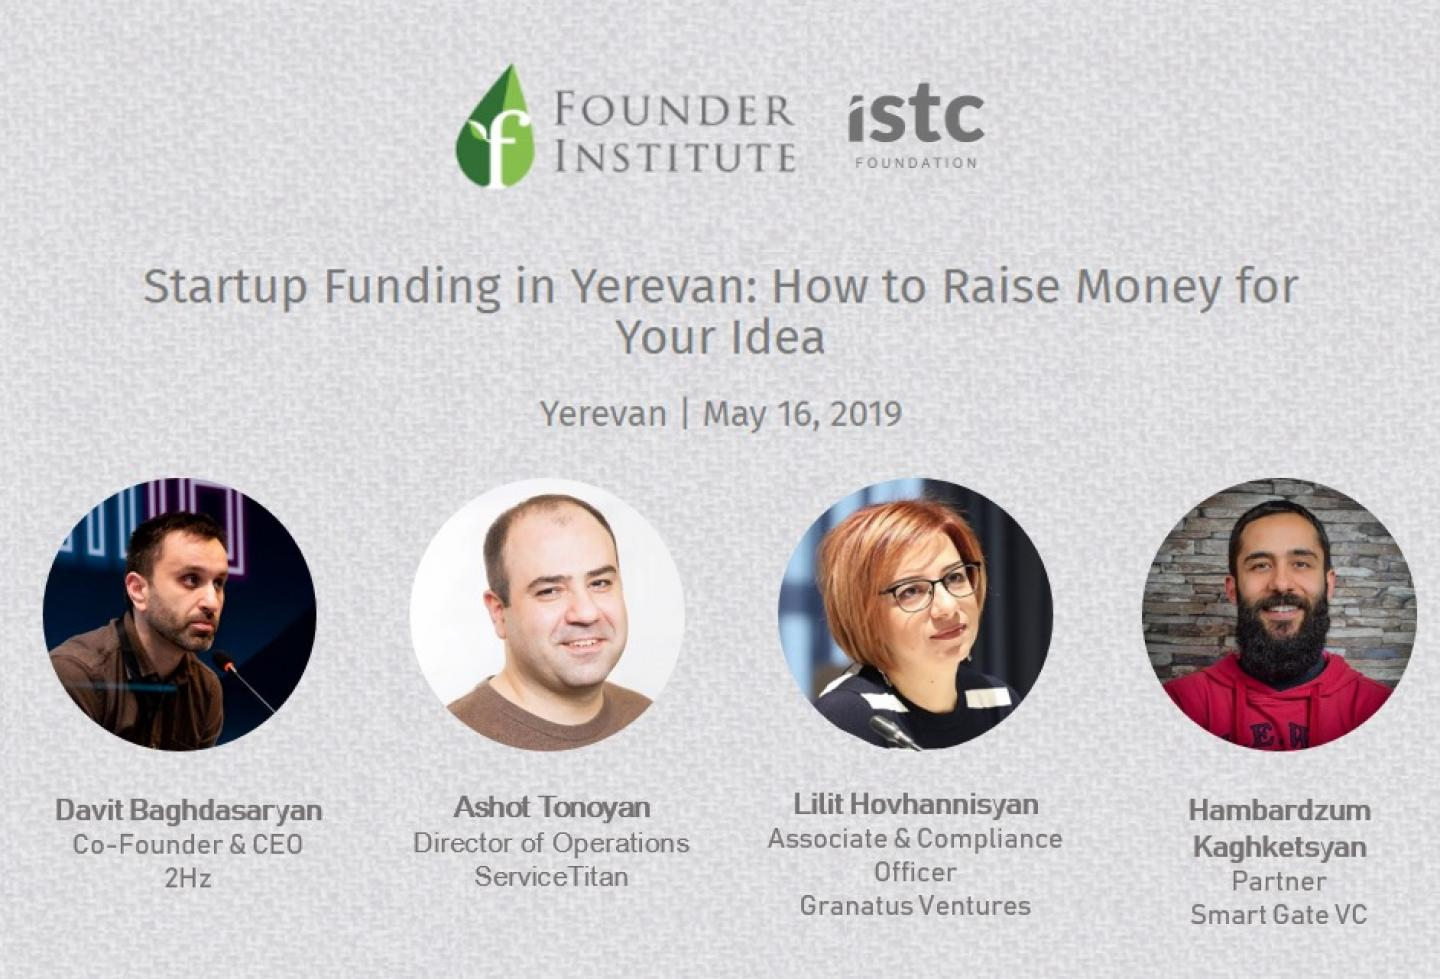 Startup Funding in Yerevan: How to Raise Money for Your Idea